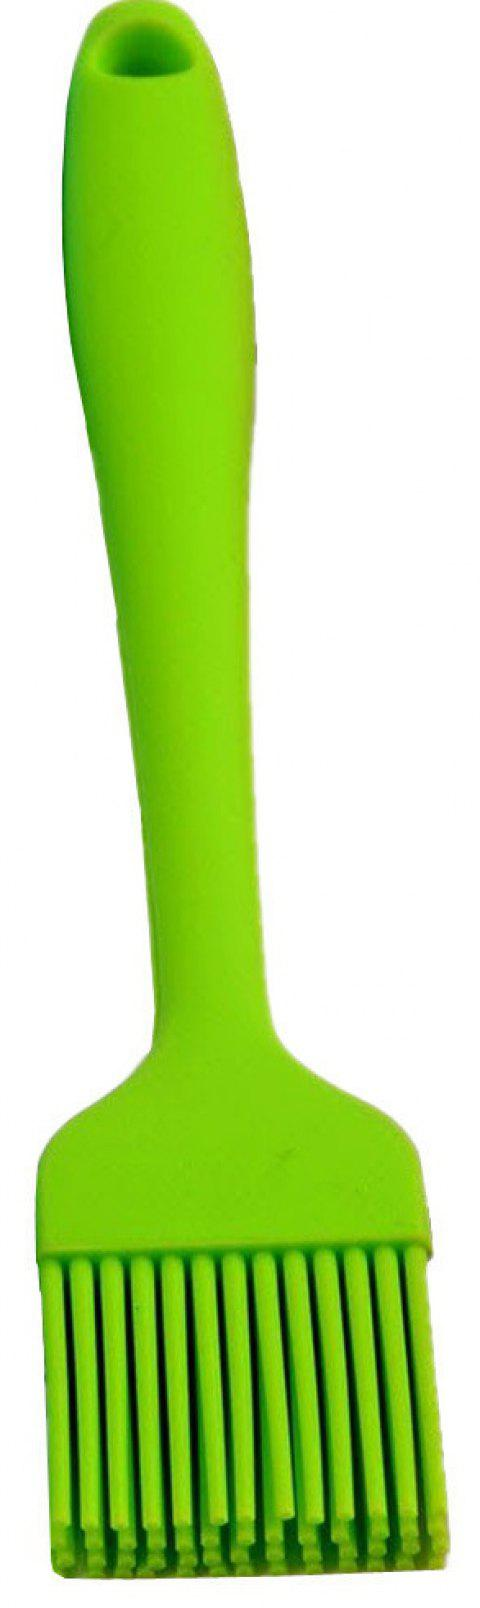 Silicone Basting Bbq Pastry Barbecue Utensil Use for Grilling Marinating Desser - GREEN